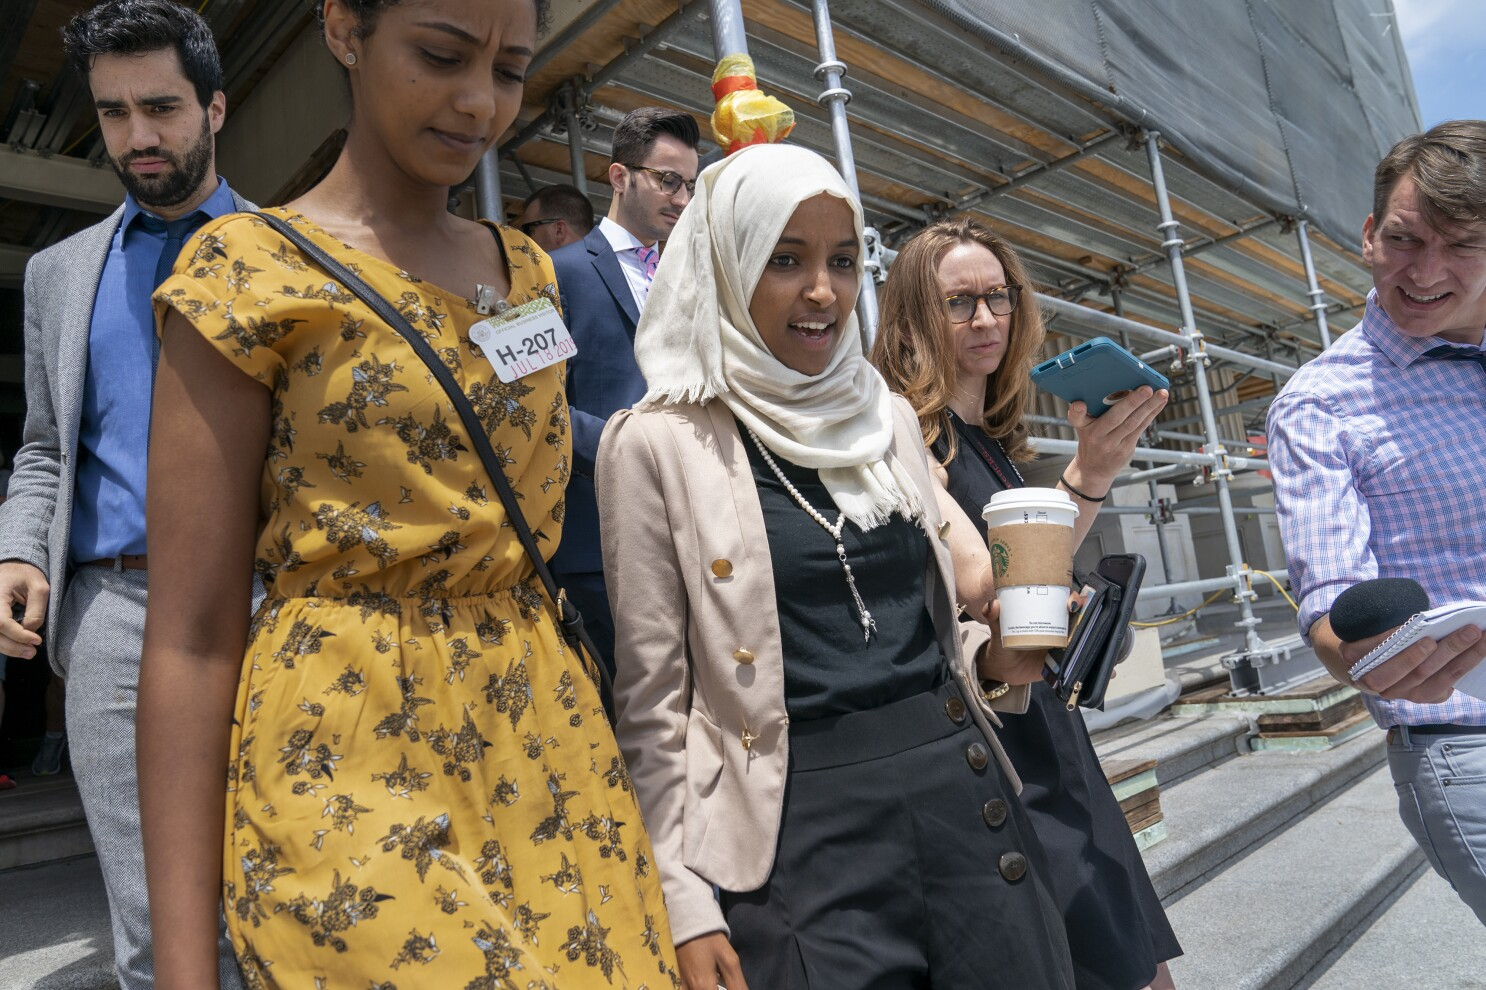 Q&A: Rep. Ilhan Omar is in Trump's crosshairs. What's going on?